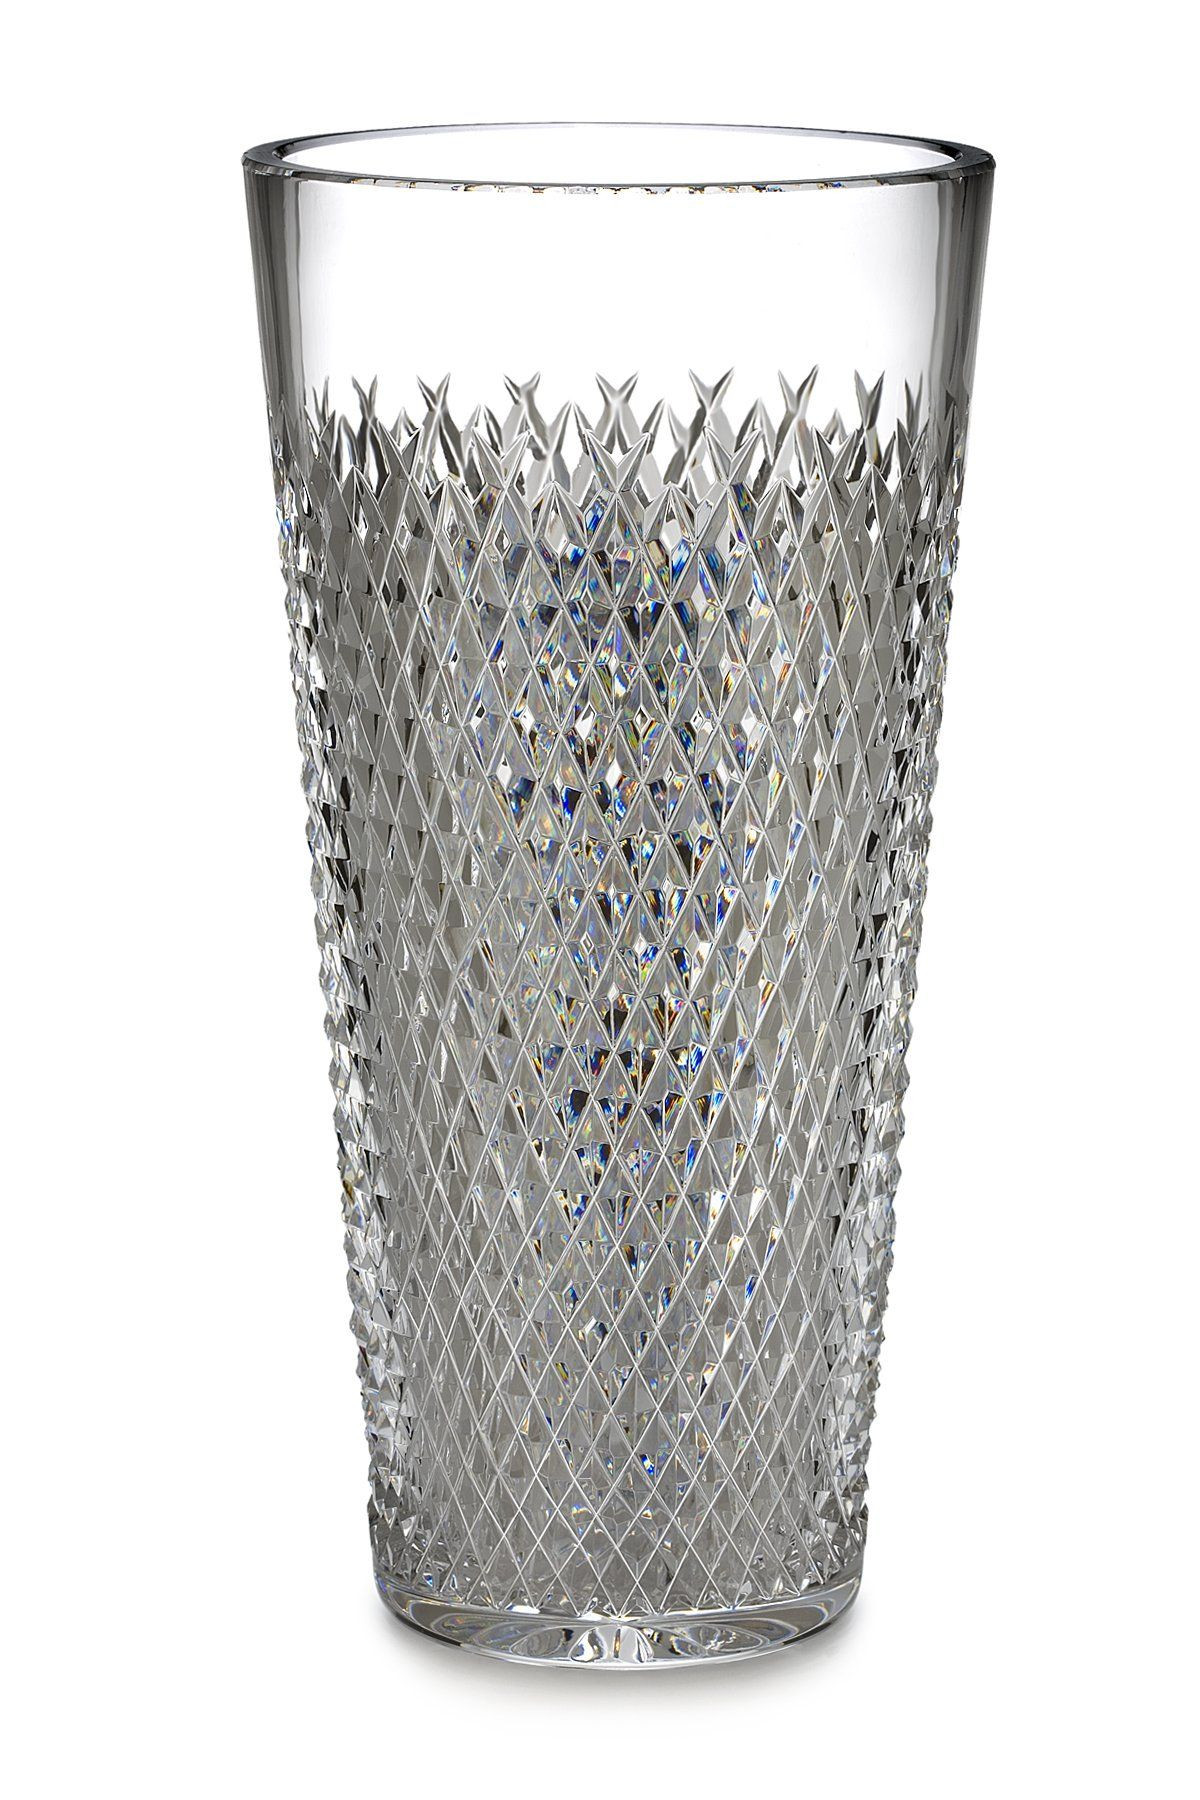 tall wide mouth vases of waterford alana 12 inch vase 12 inch vase crystal alana vases with waterford alana 12 inch vase 12 inch vase crystal alana